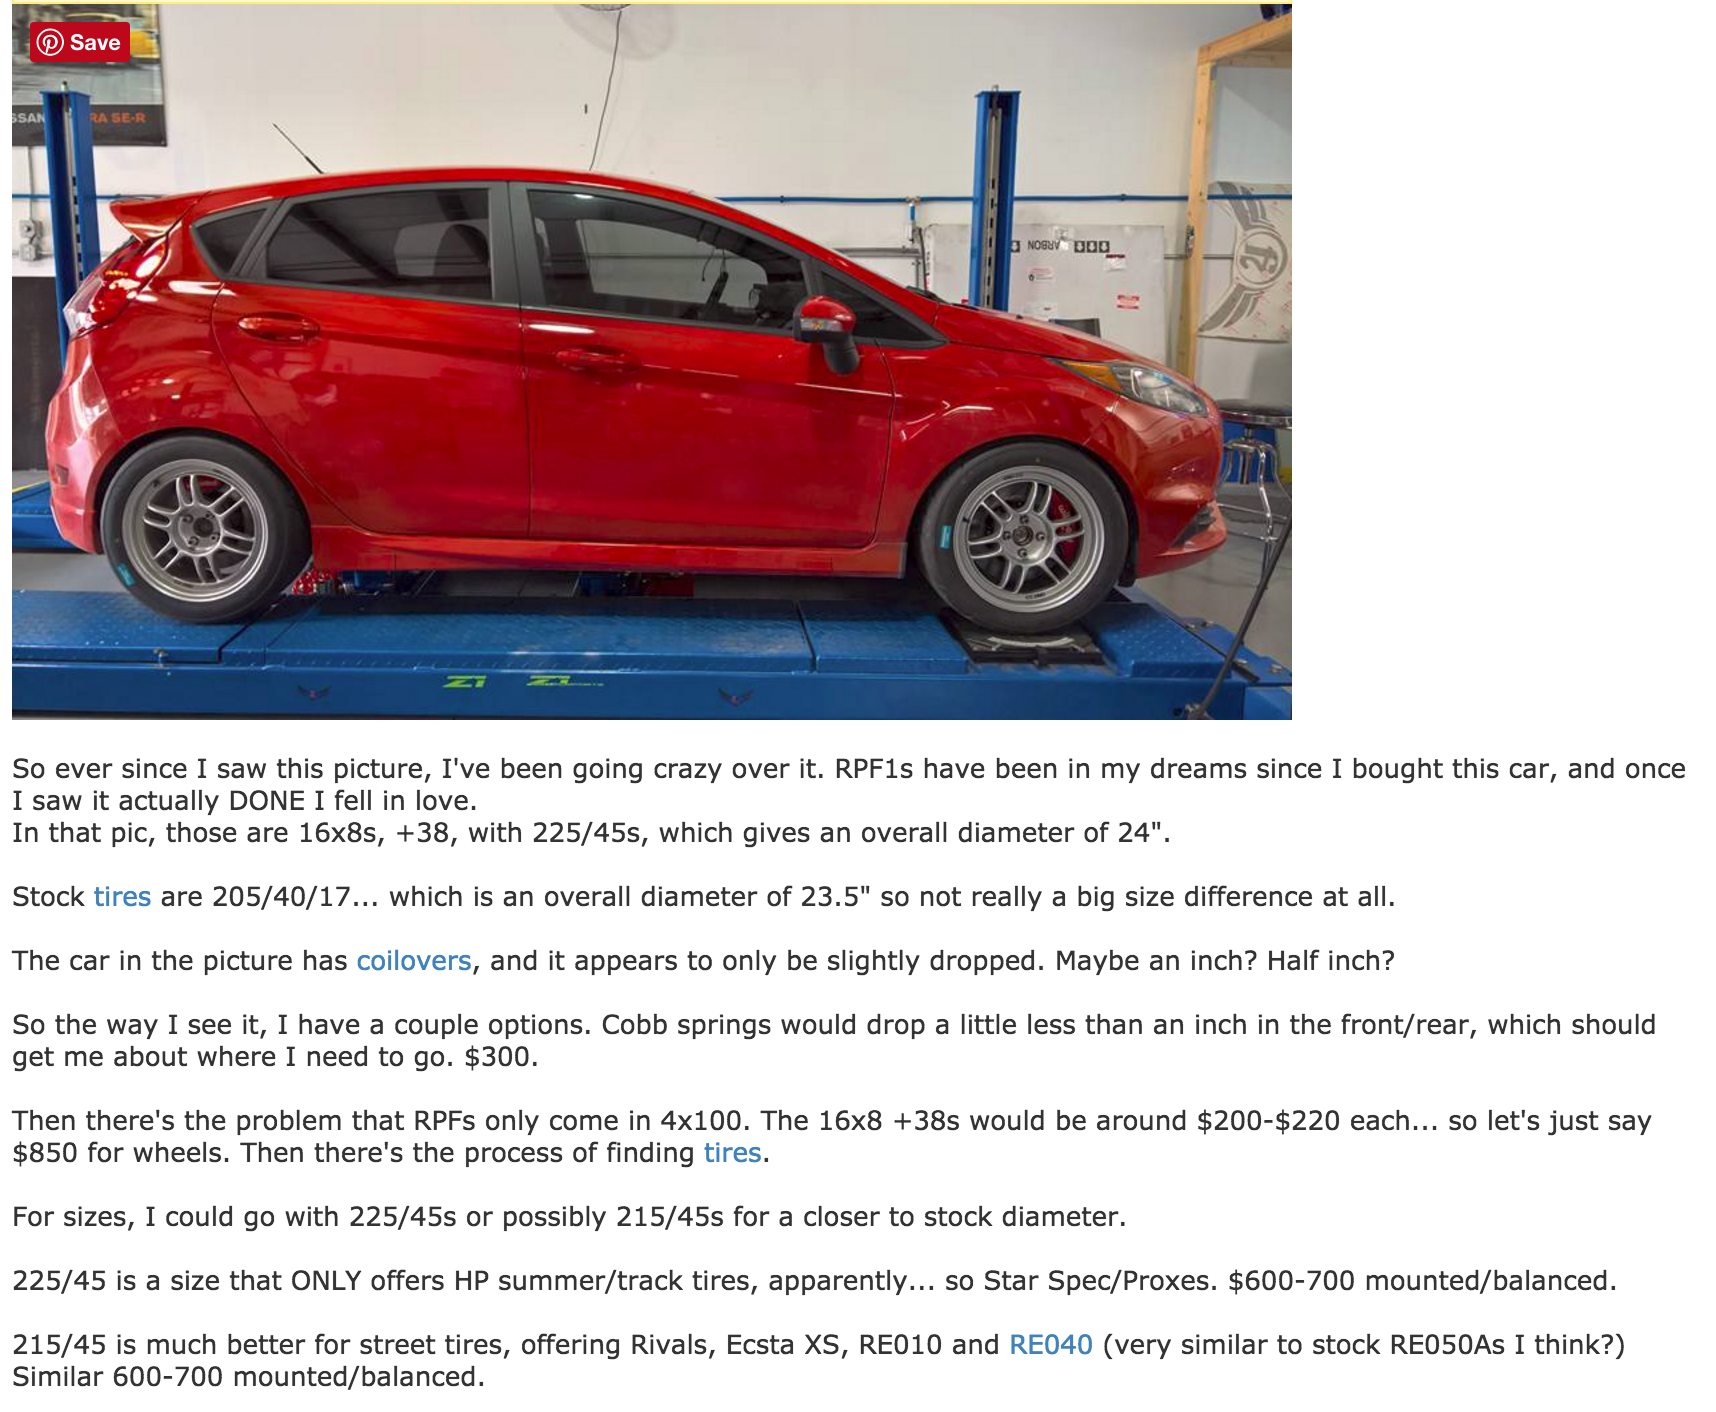 Fiesta St Rpf1 Setup Hot Hatch Fiesta St Going Crazy